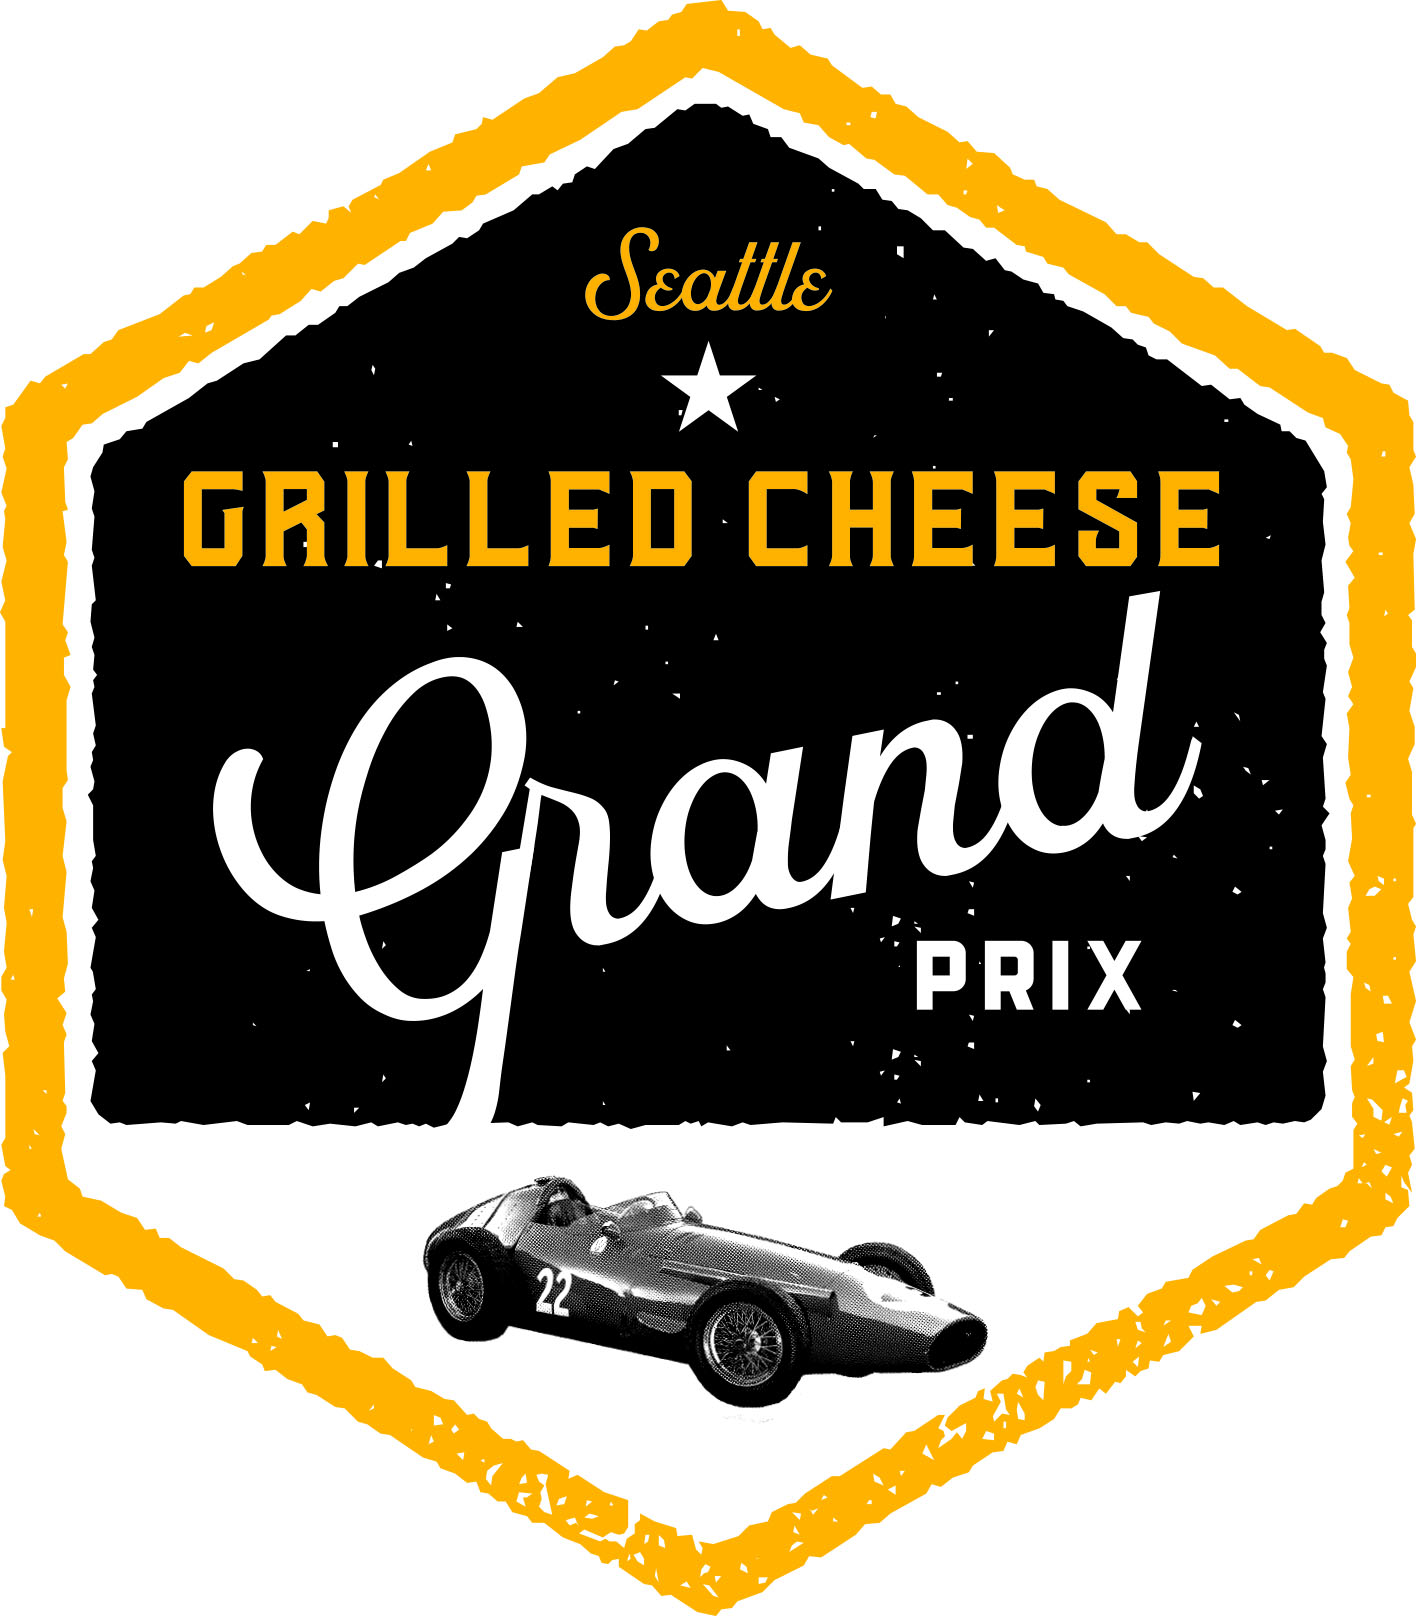 Grilled Cheese Grand Prix presented by Dairy Farmers of Washington